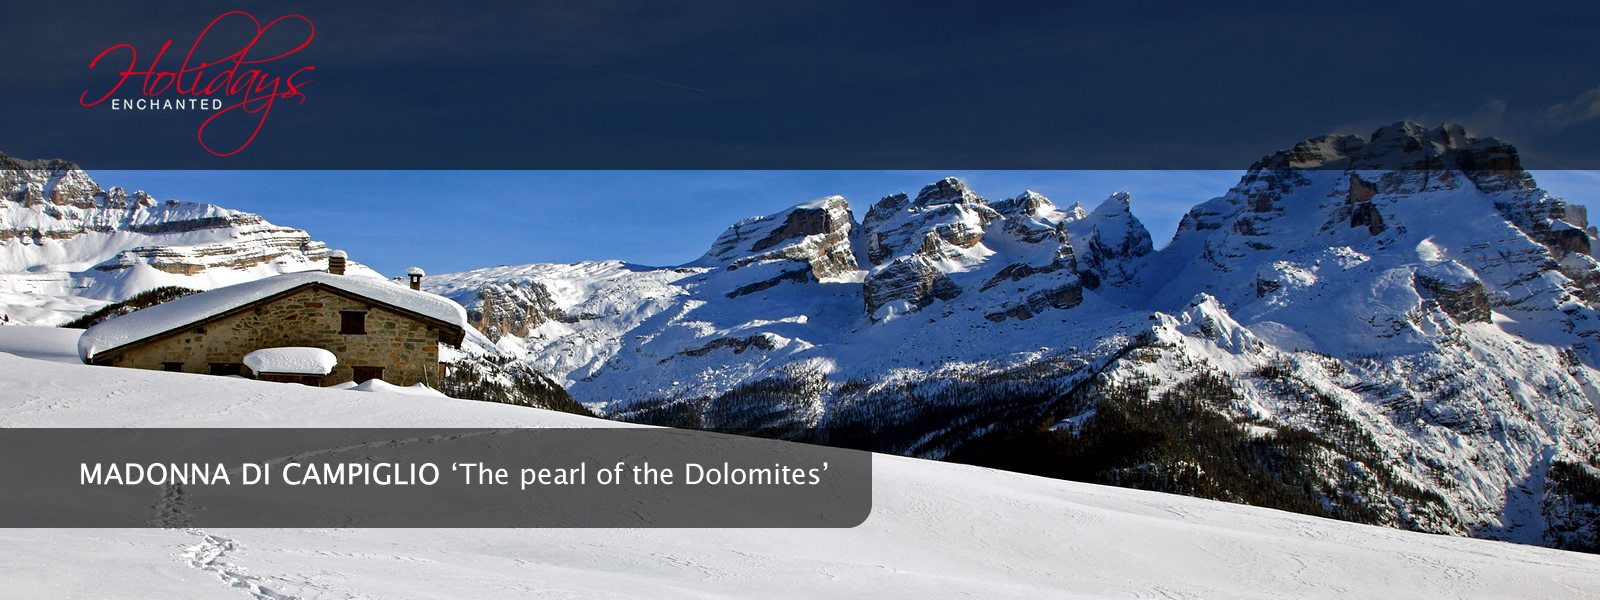 Footprints in the snow in the Dolomite Mountains near Madonna di Campiglio